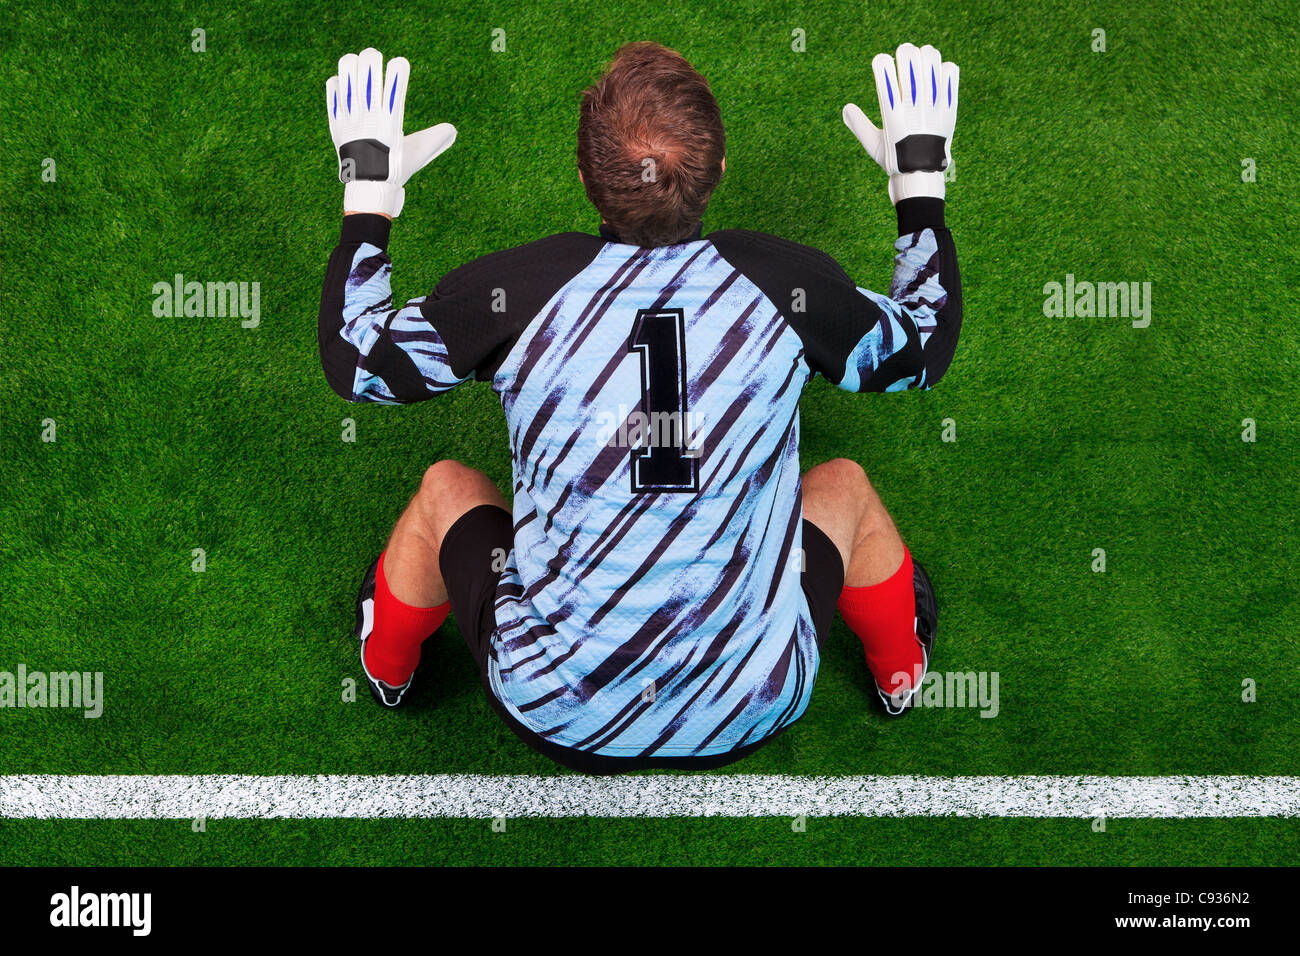 Overhead photo of a football goalkeeper standing on the goal line in ready position to face a penalty kick. - Stock Image